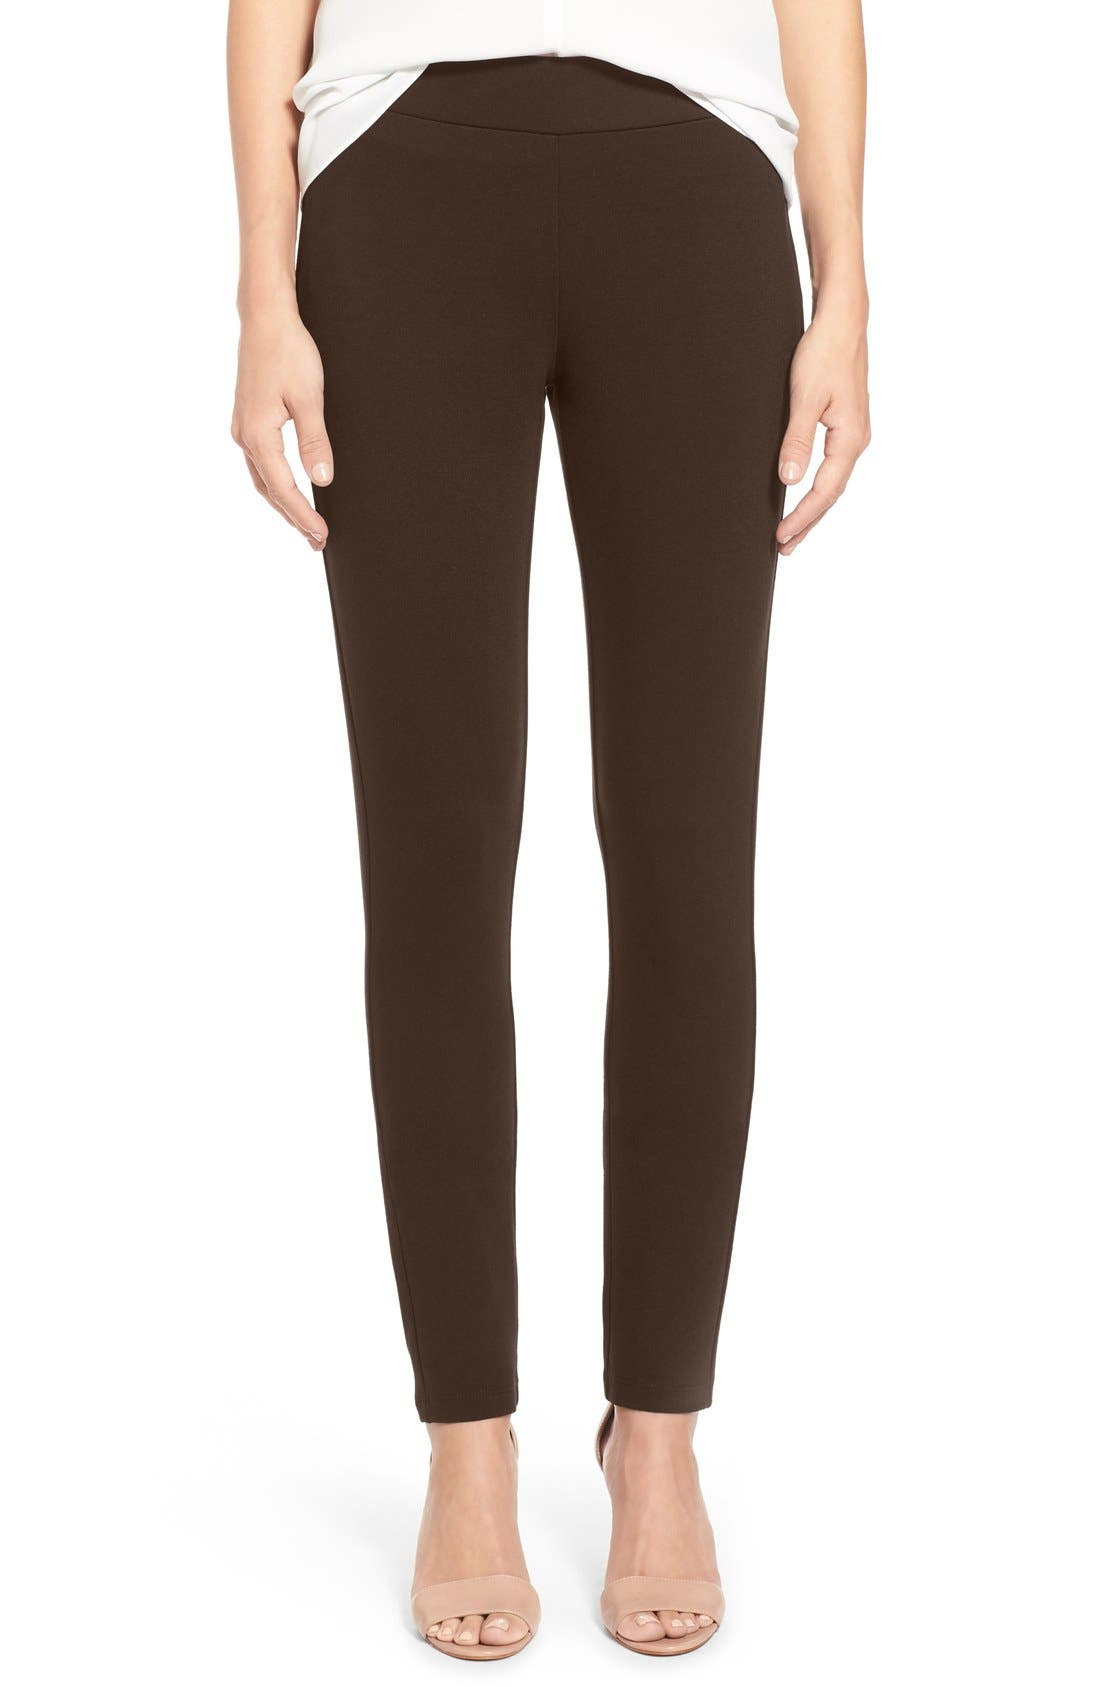 Alternate Image 1 Selected - NYDJ Stretch 'Jodie' Ponte Leggings (Regular & Petite)